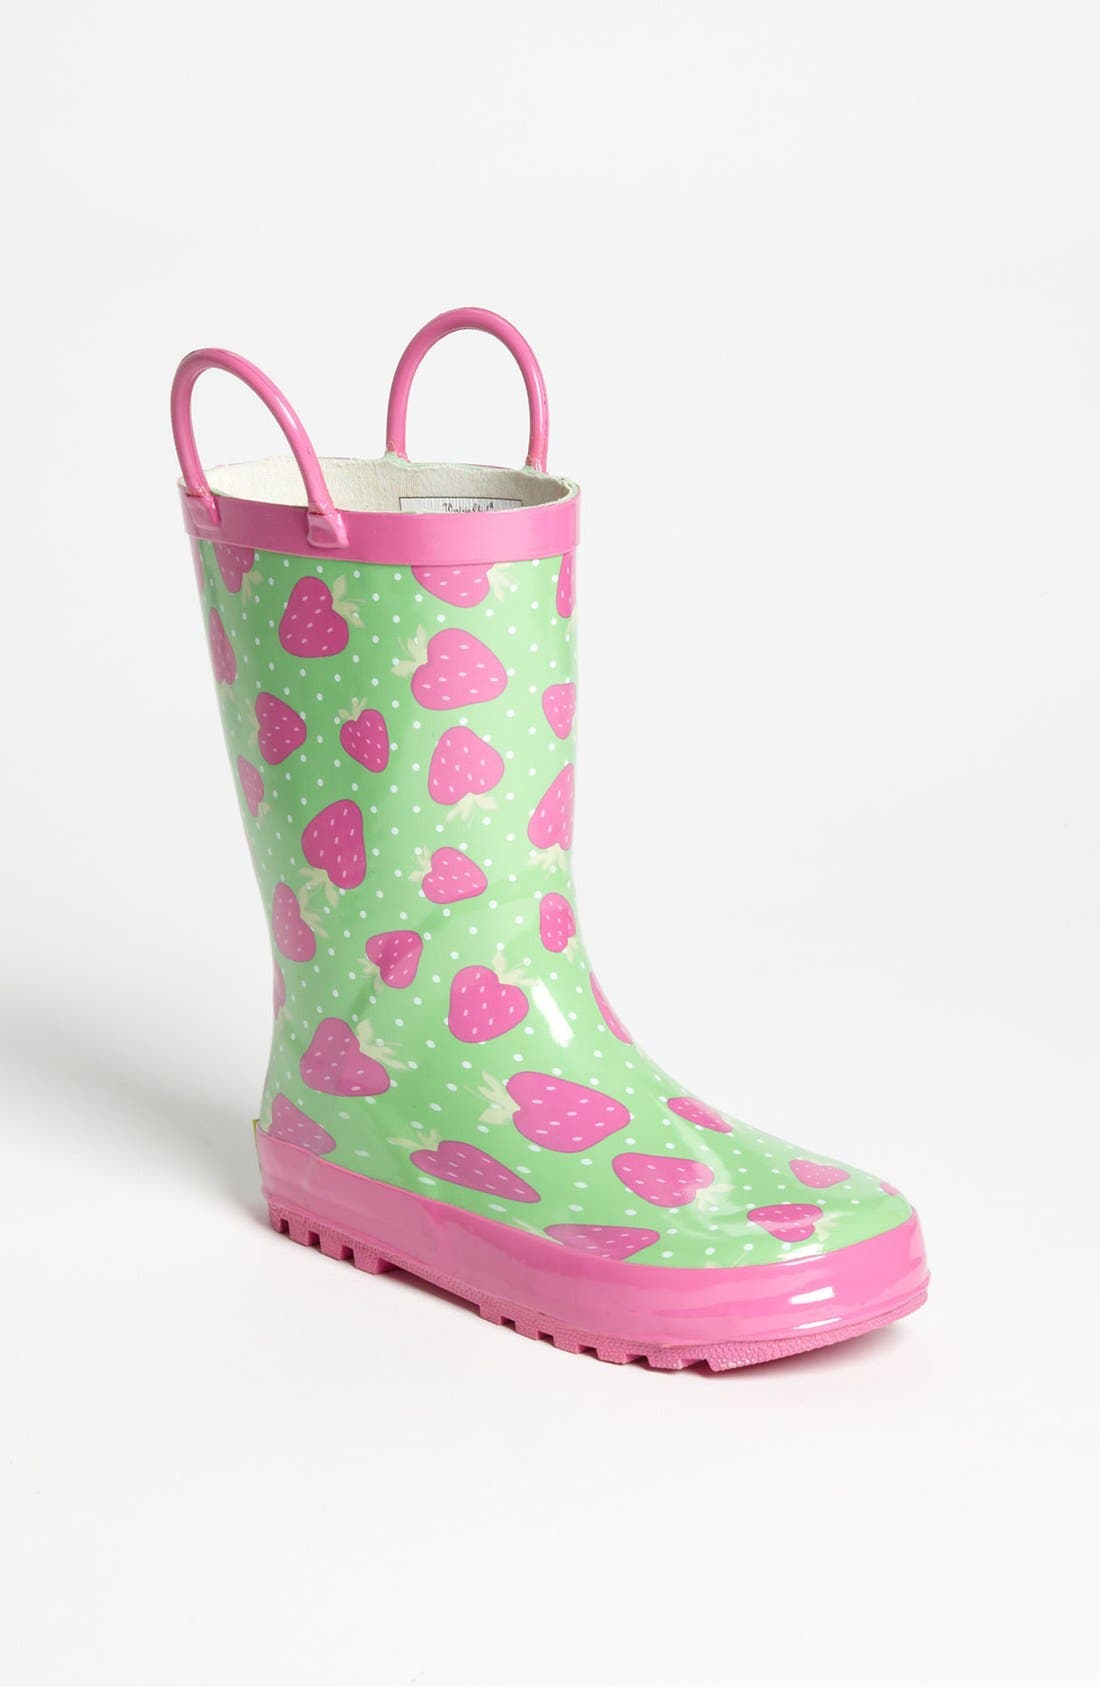 Main Image - Western Chief 'Strawberry Toss' Rain Boot (Toddler & Little Kid)